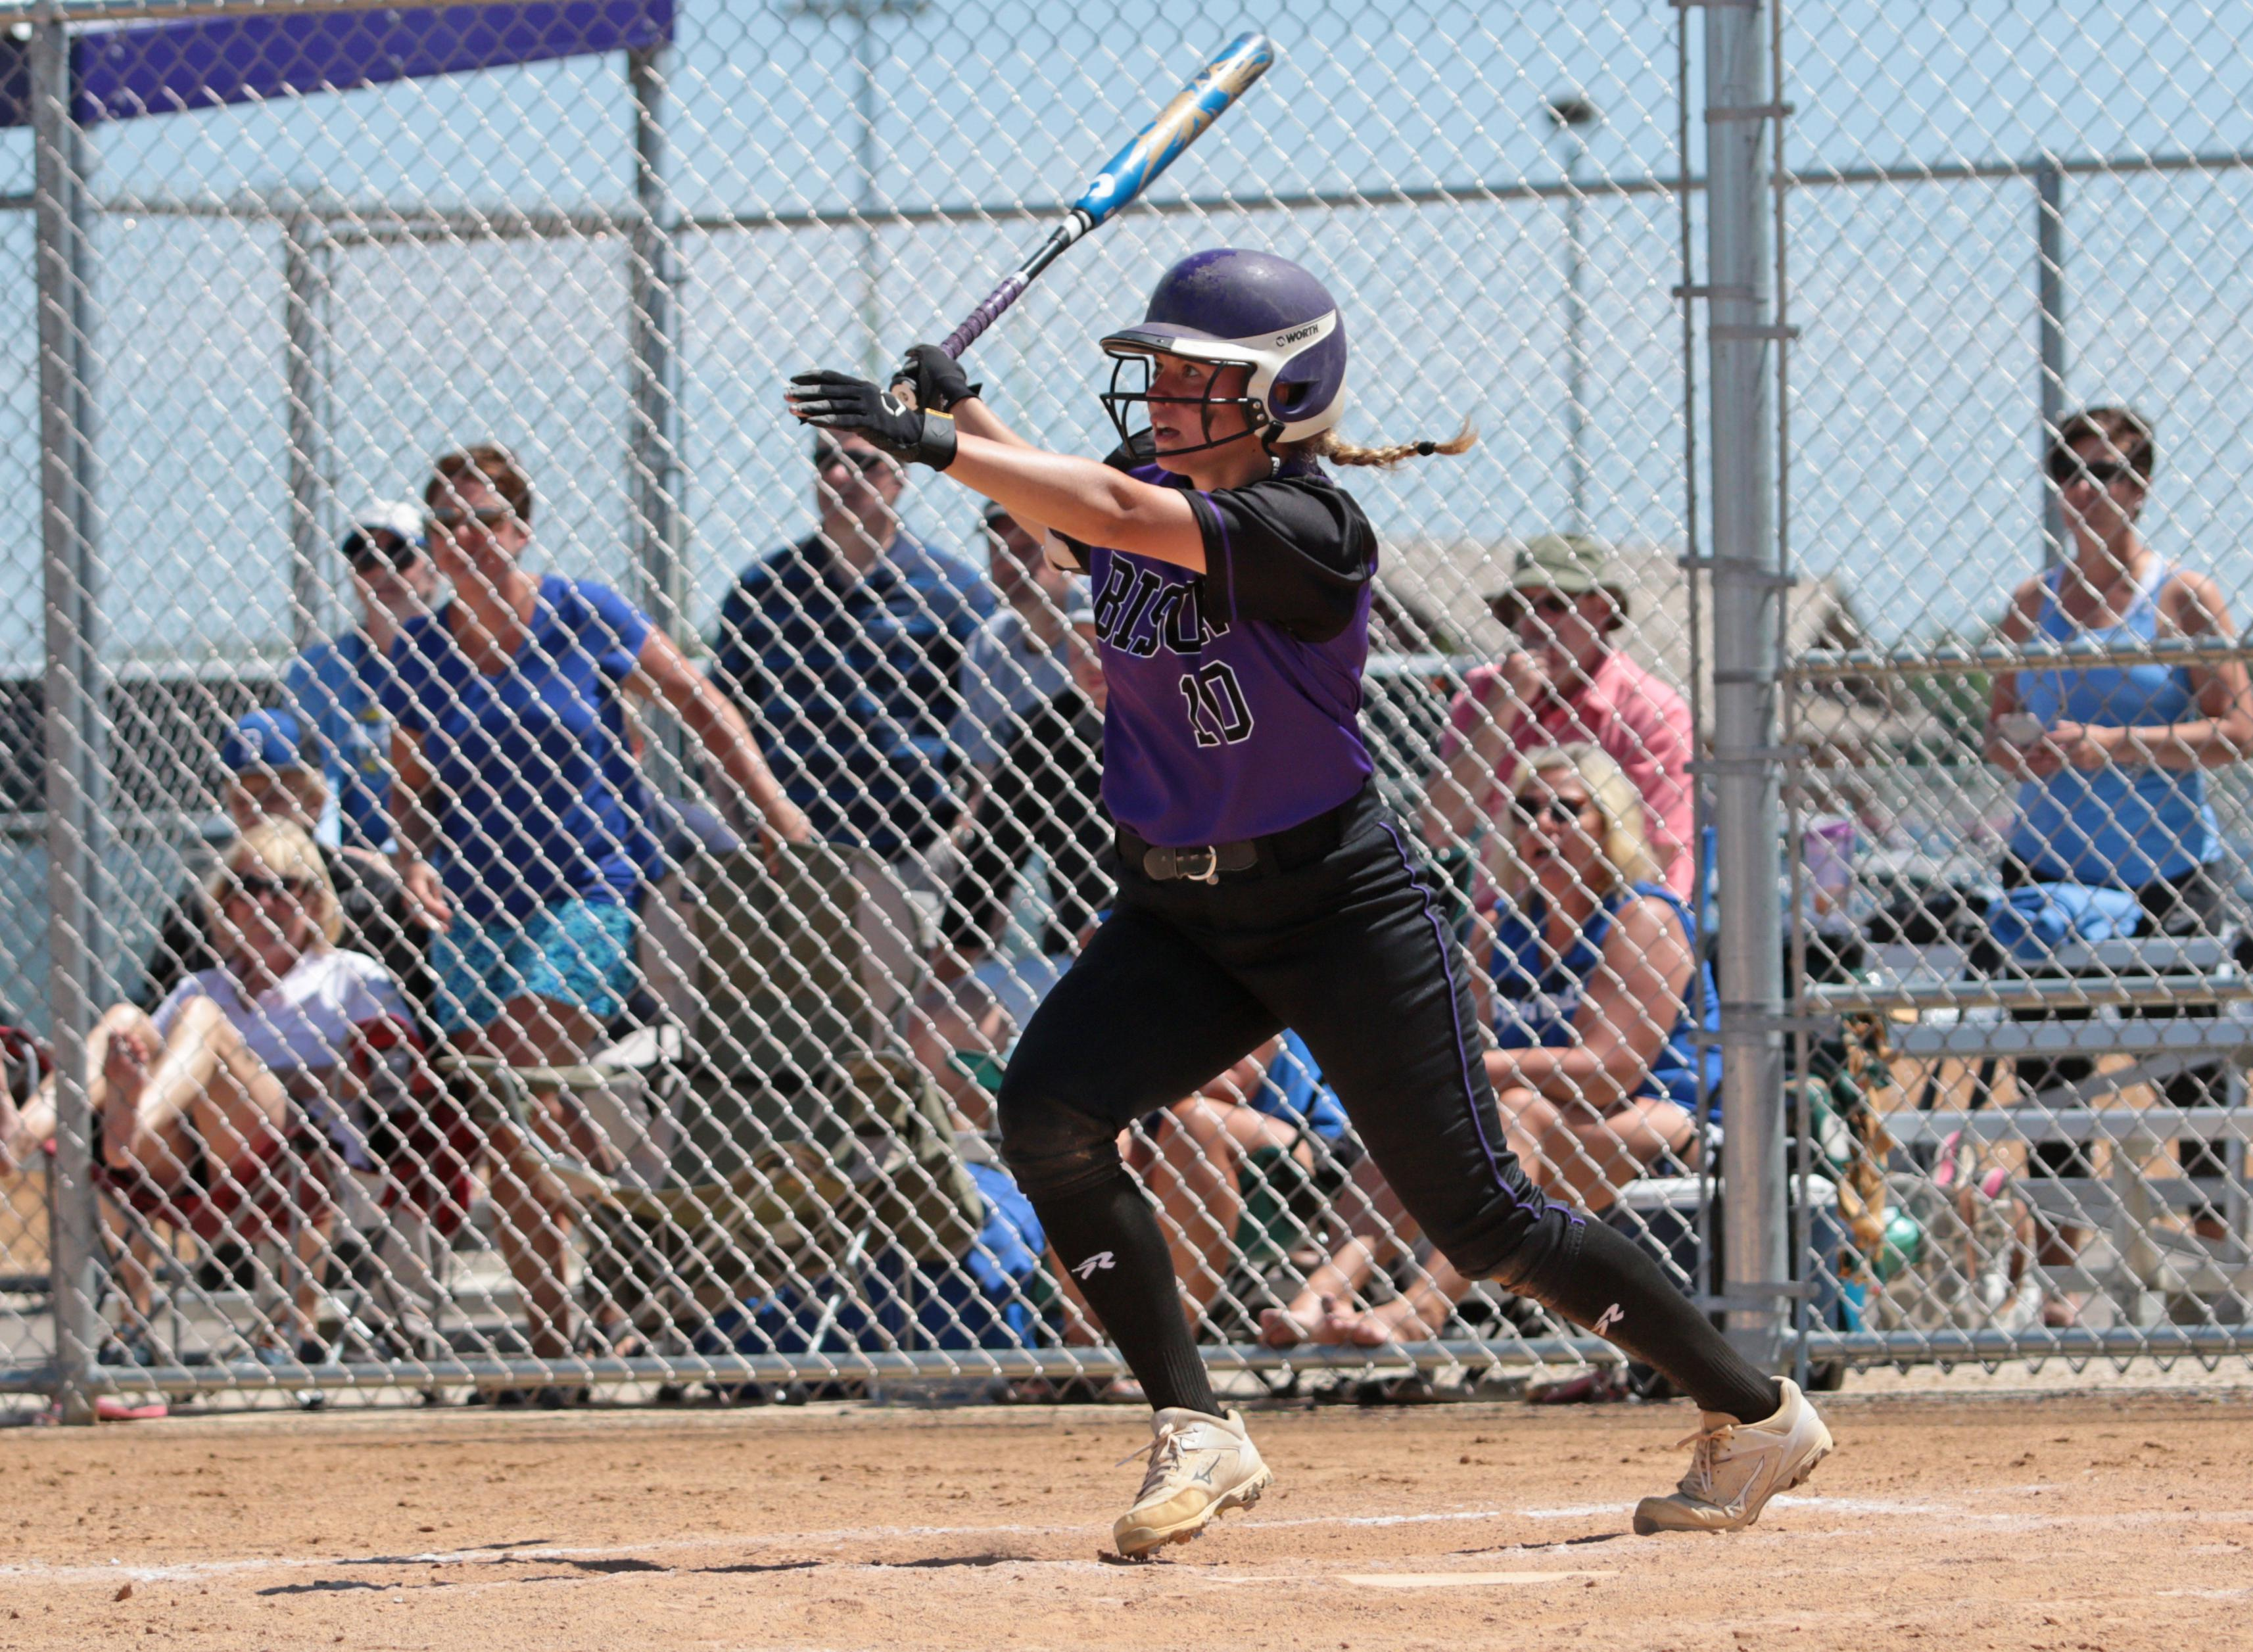 Buffalo's Emily Hansen won the 2018 Ms. Softball Award after another stellar season with the Bison. Photo by Cheryl Myers, SportsEngine.